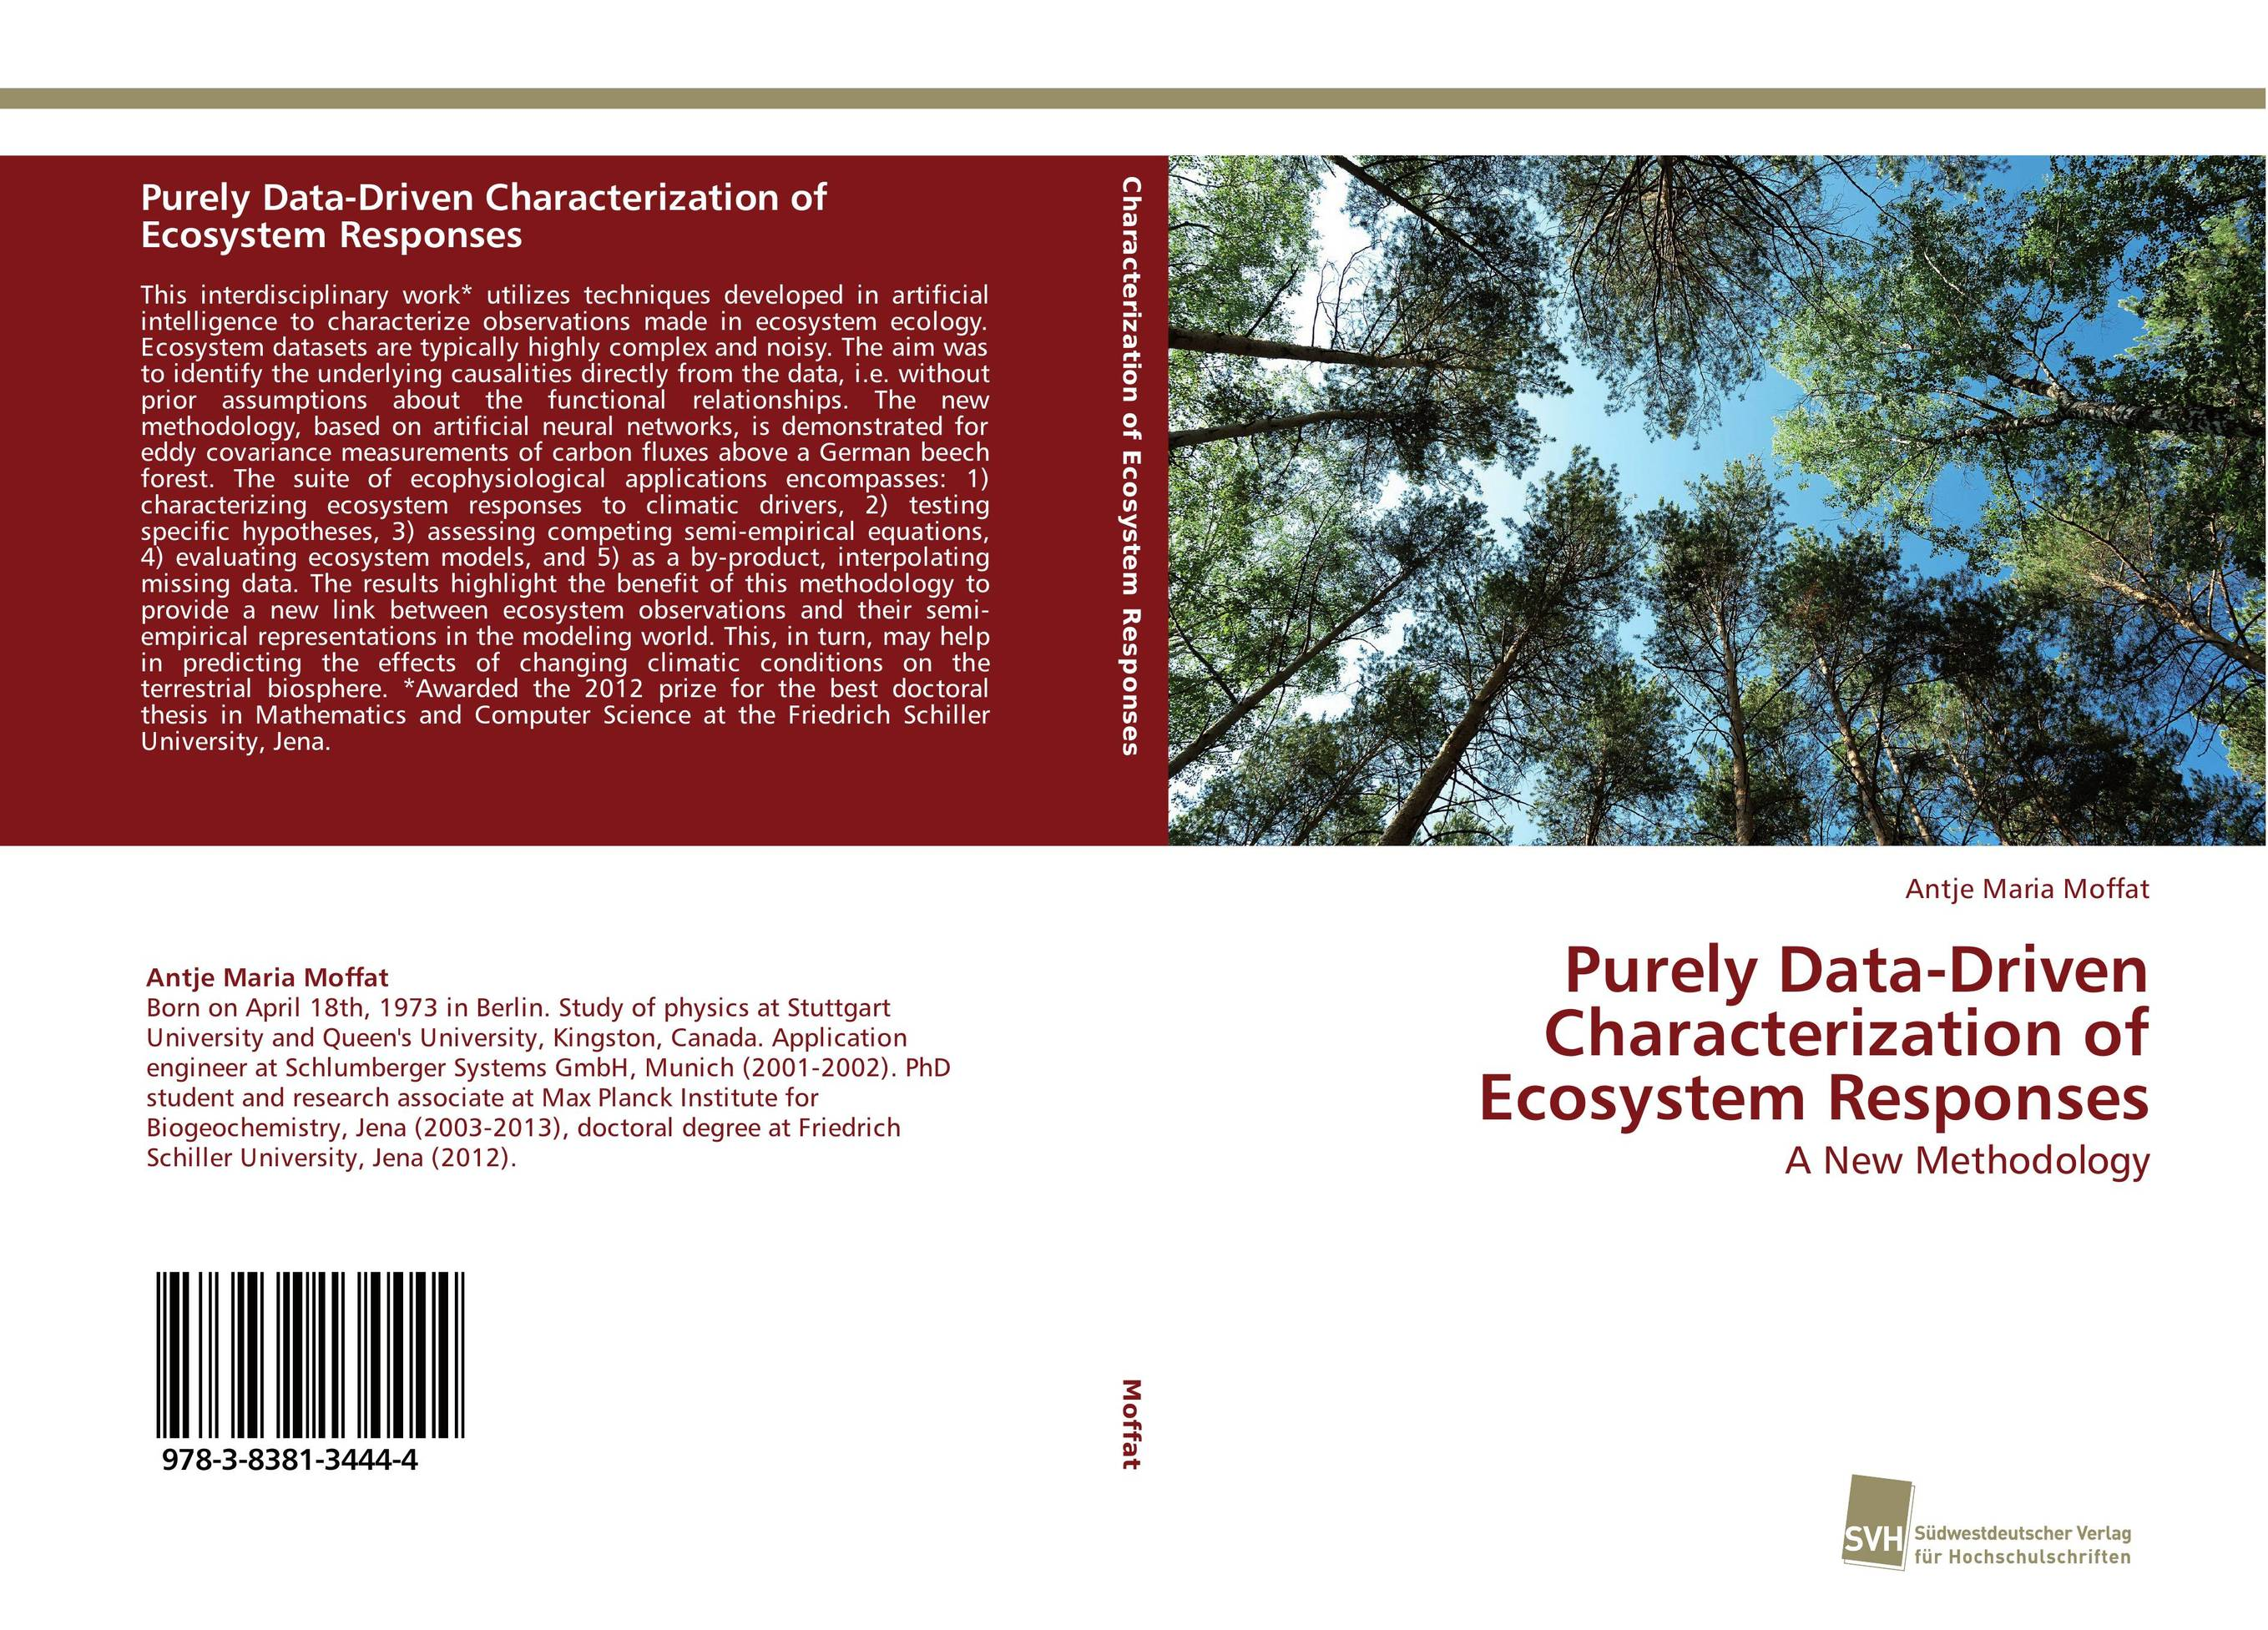 Purely Data-Driven Characterization of Ecosystem Responses ecosystem ecology